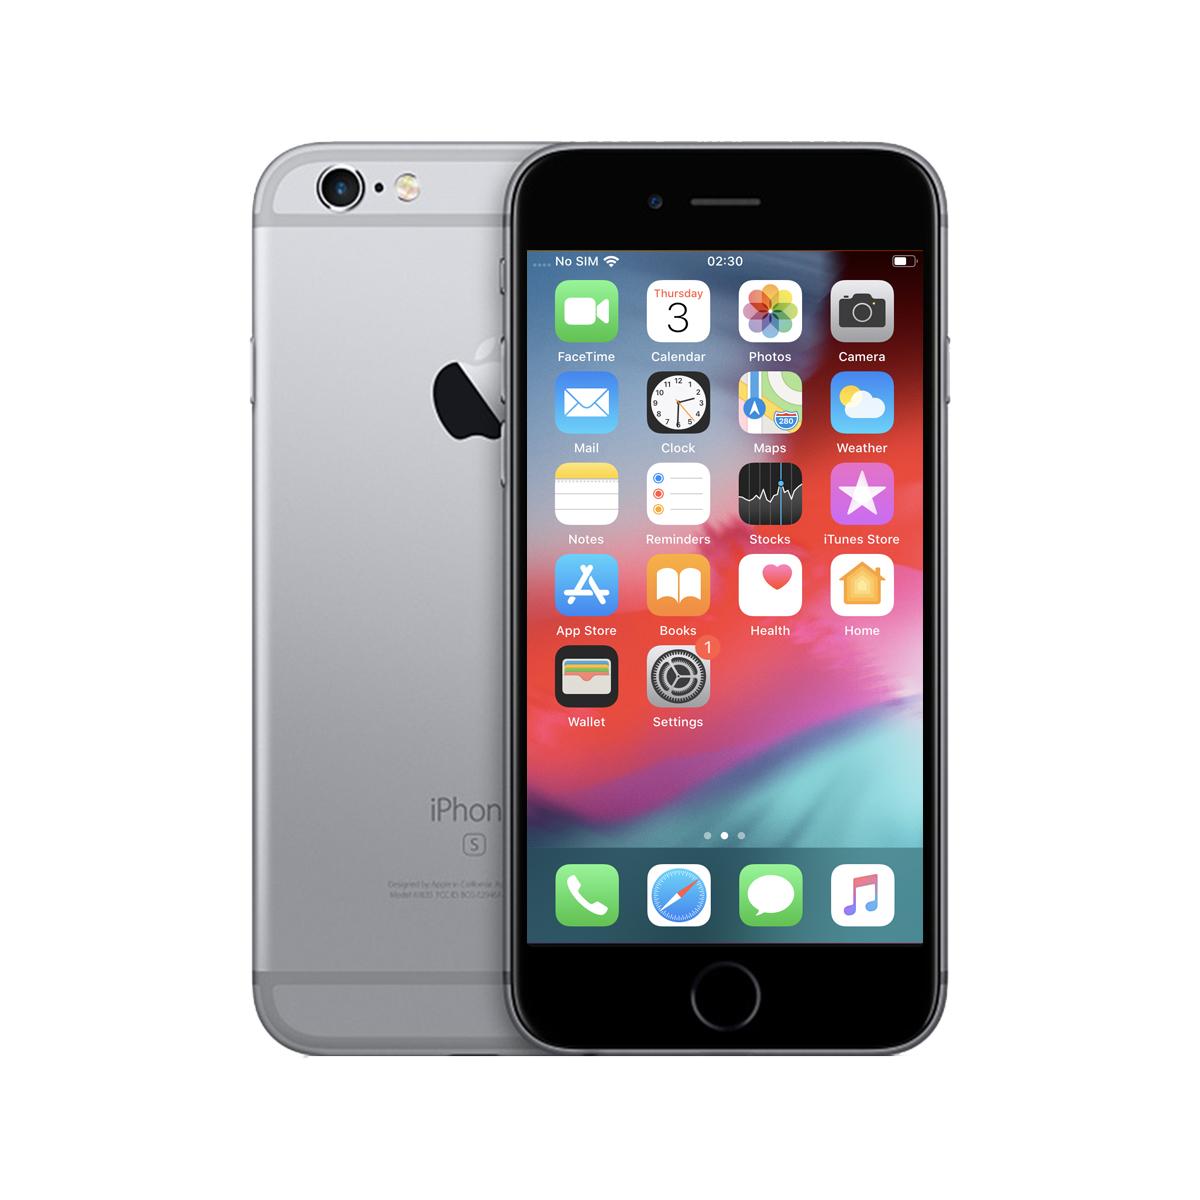 A-Grade iPhone 6S Space Gray 16GB